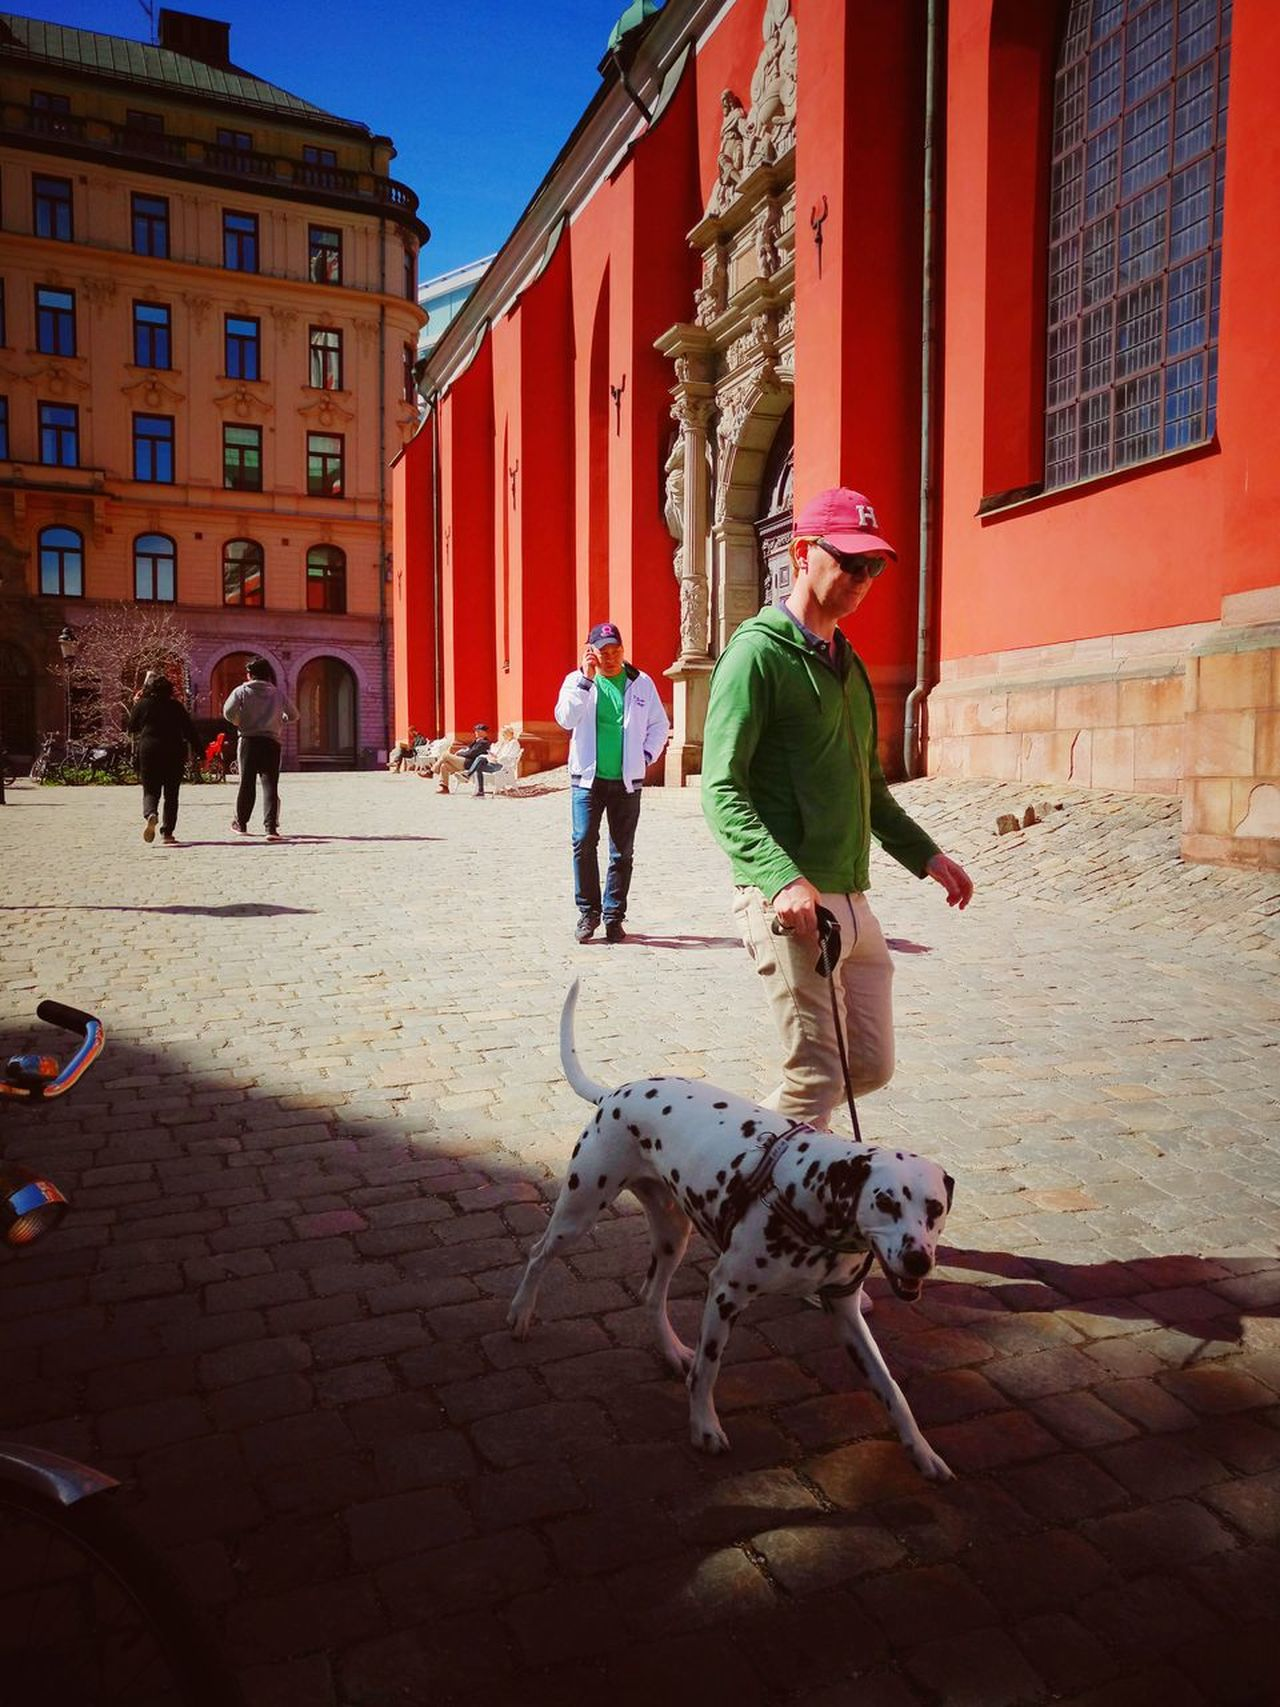 Architecture People Built Structure Building Exterior Real People Outdoors Day City Sweden People Watching Stockholm Streetphotography City Life Dalmatian Dog Dog Walker